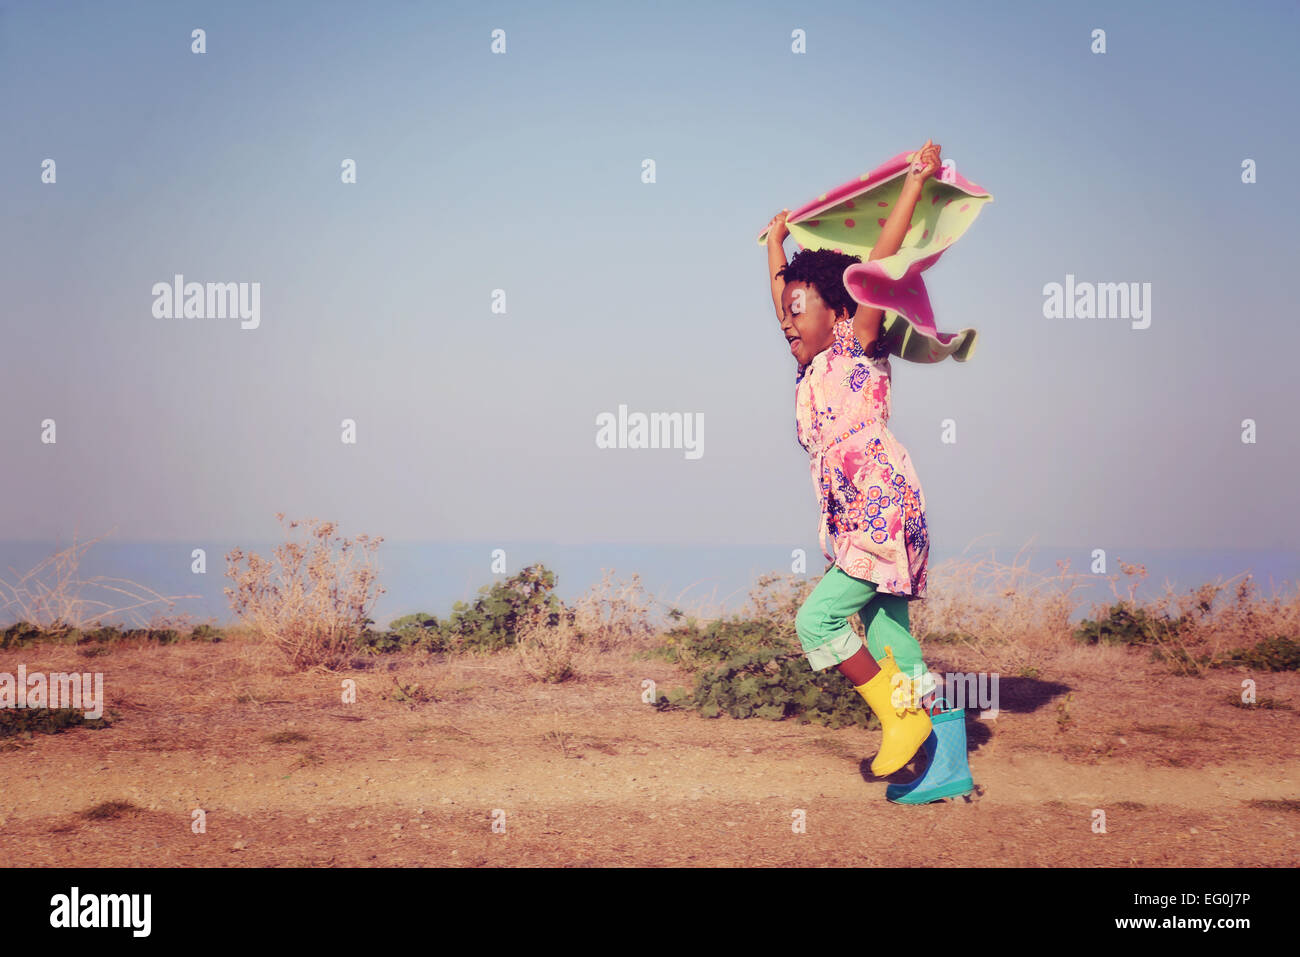 Girl running holding scarf above her head - Stock Image